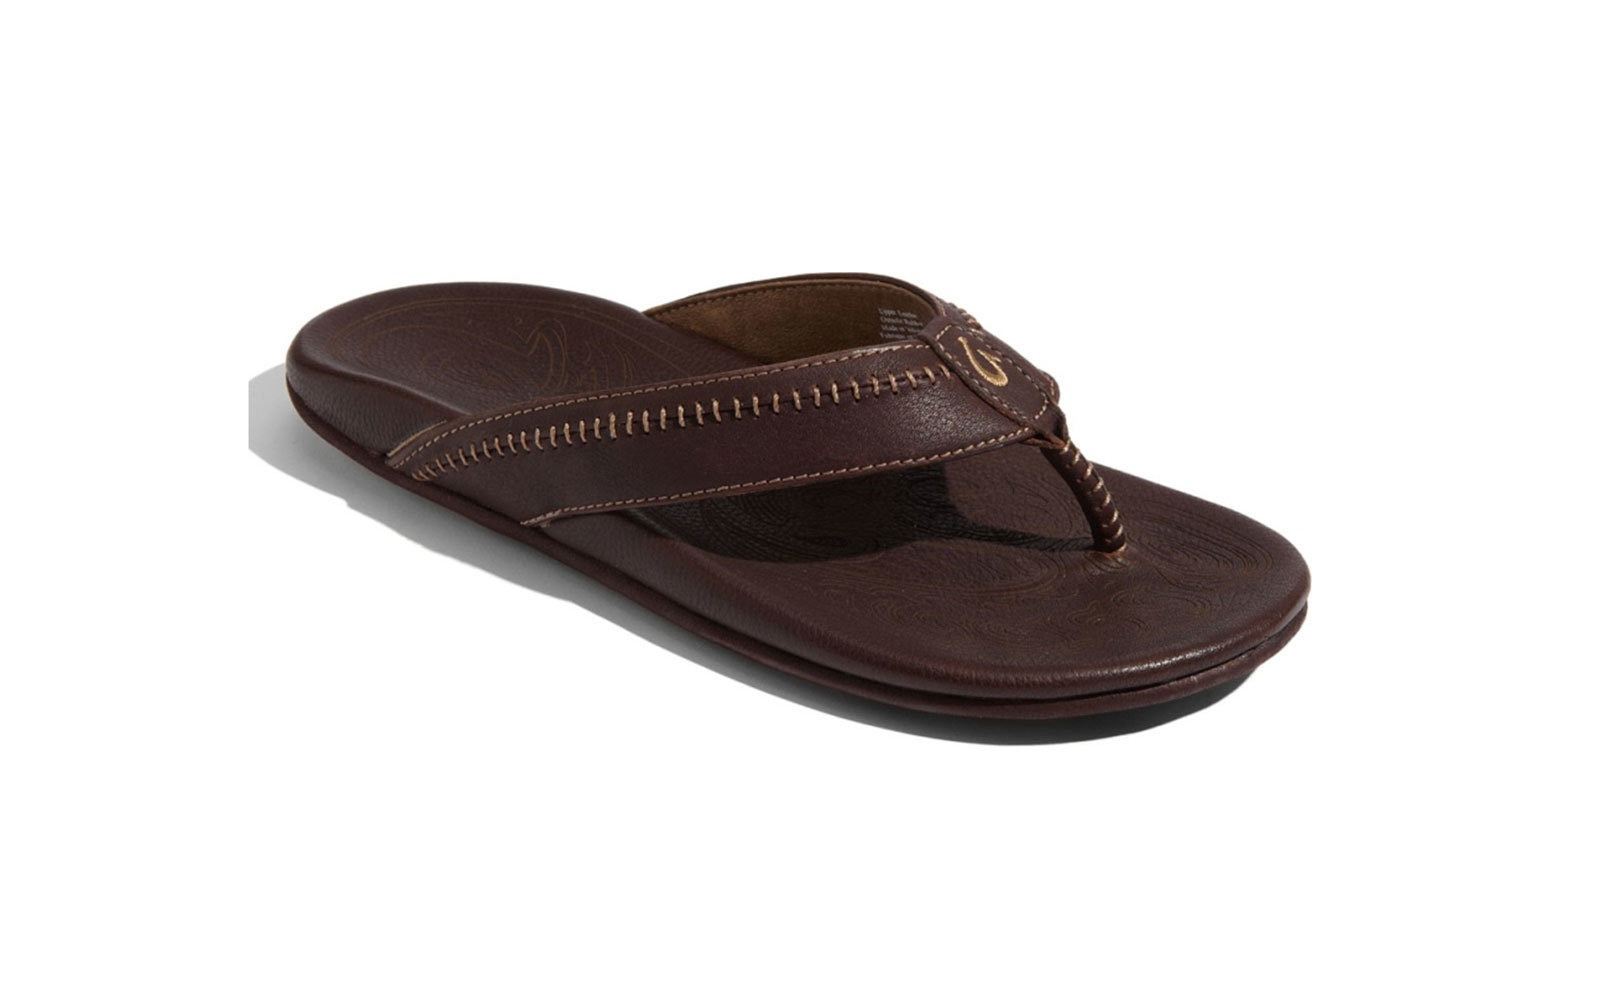 5e4ddca8f1660 Best For  Upgraded Surf Style. olukai comfy sandals for men